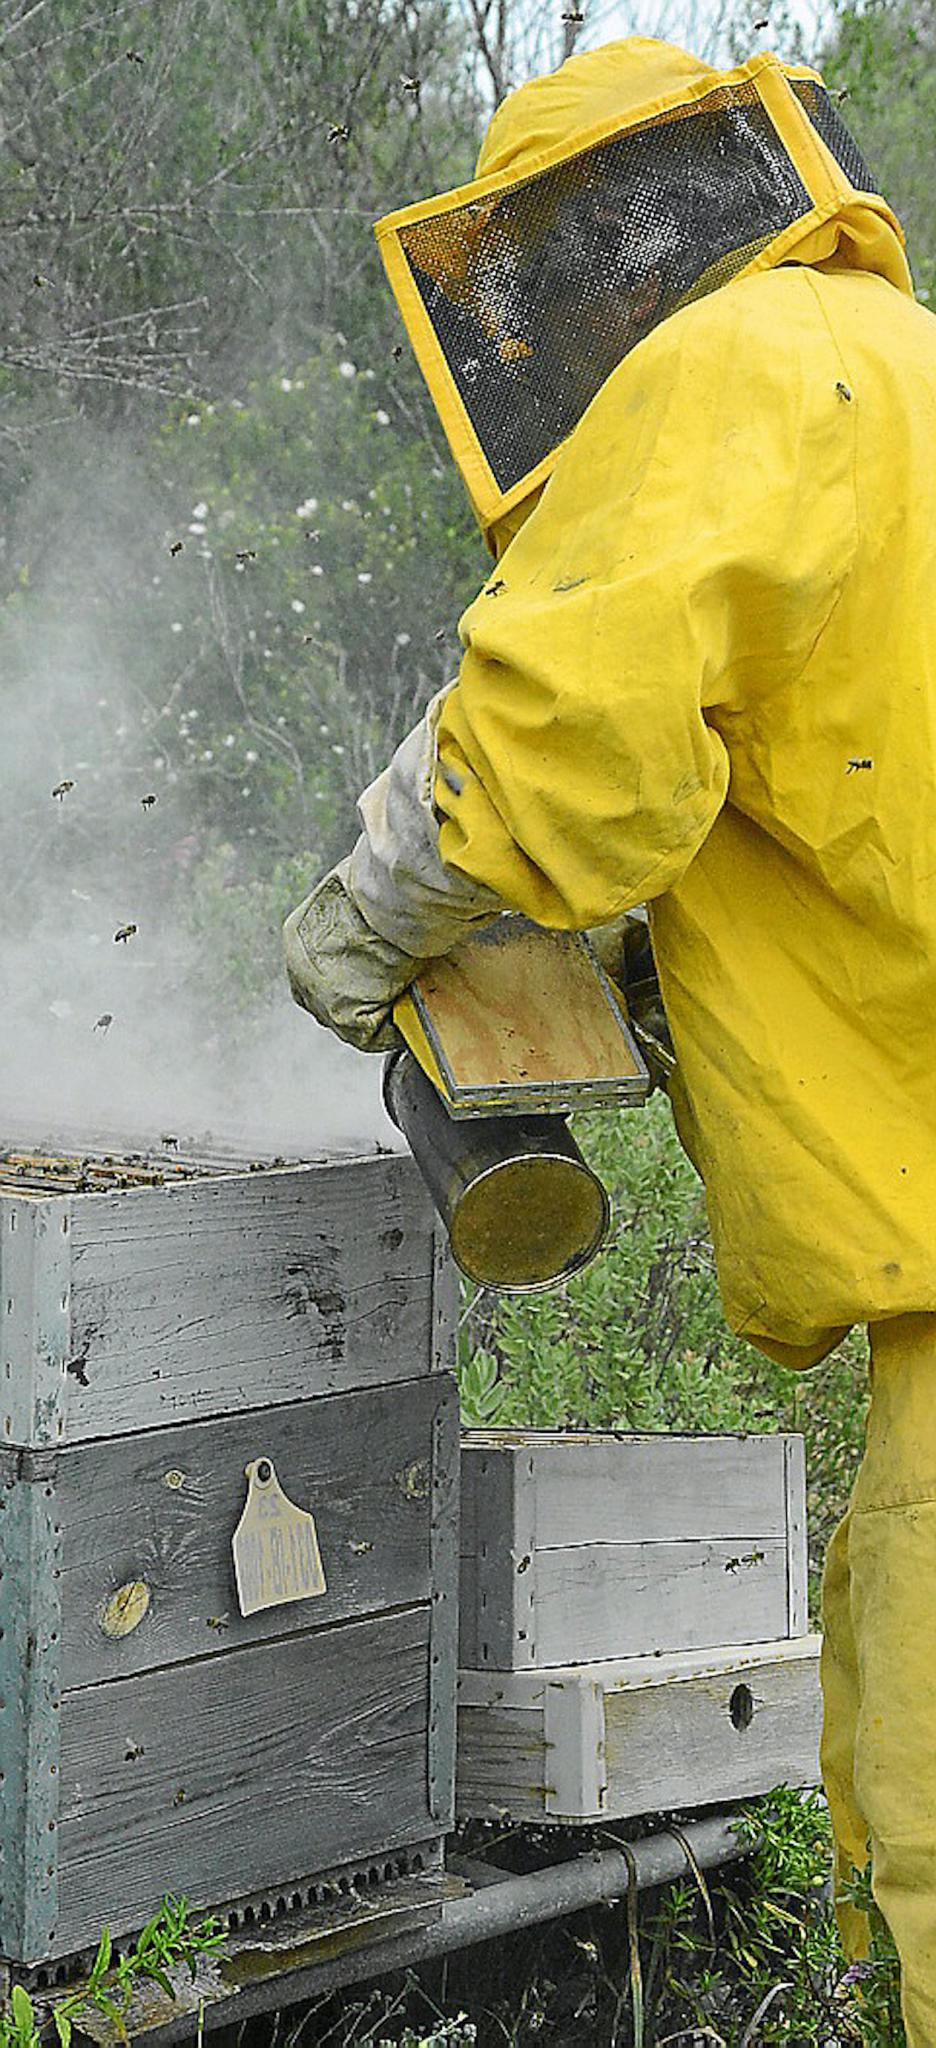 Tomeu Pizá inspecting a beehive.